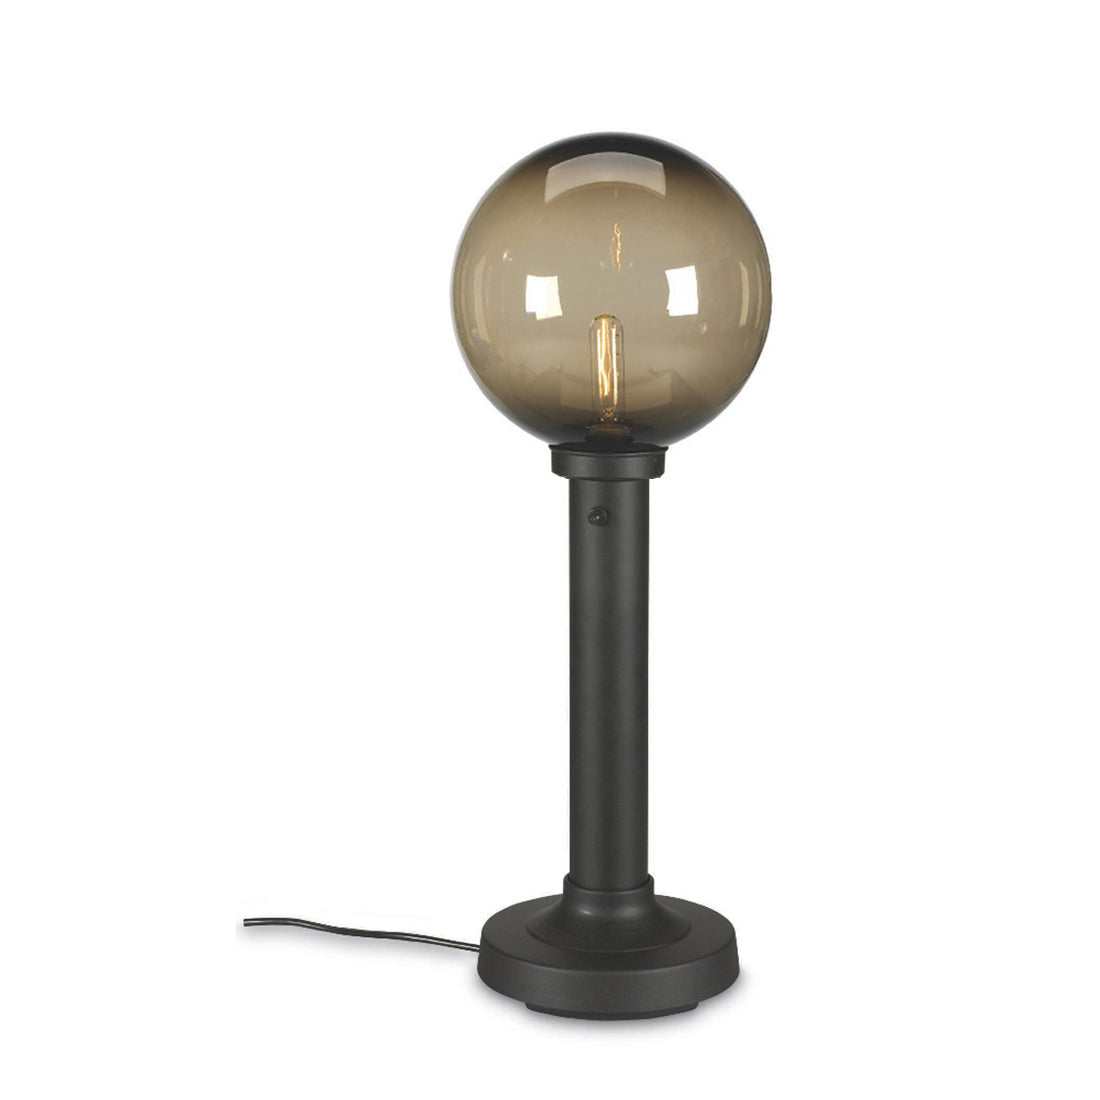 "Moonlite 35"" Table Lamp 09727 with 3"" bronze tube body and bronze globe"